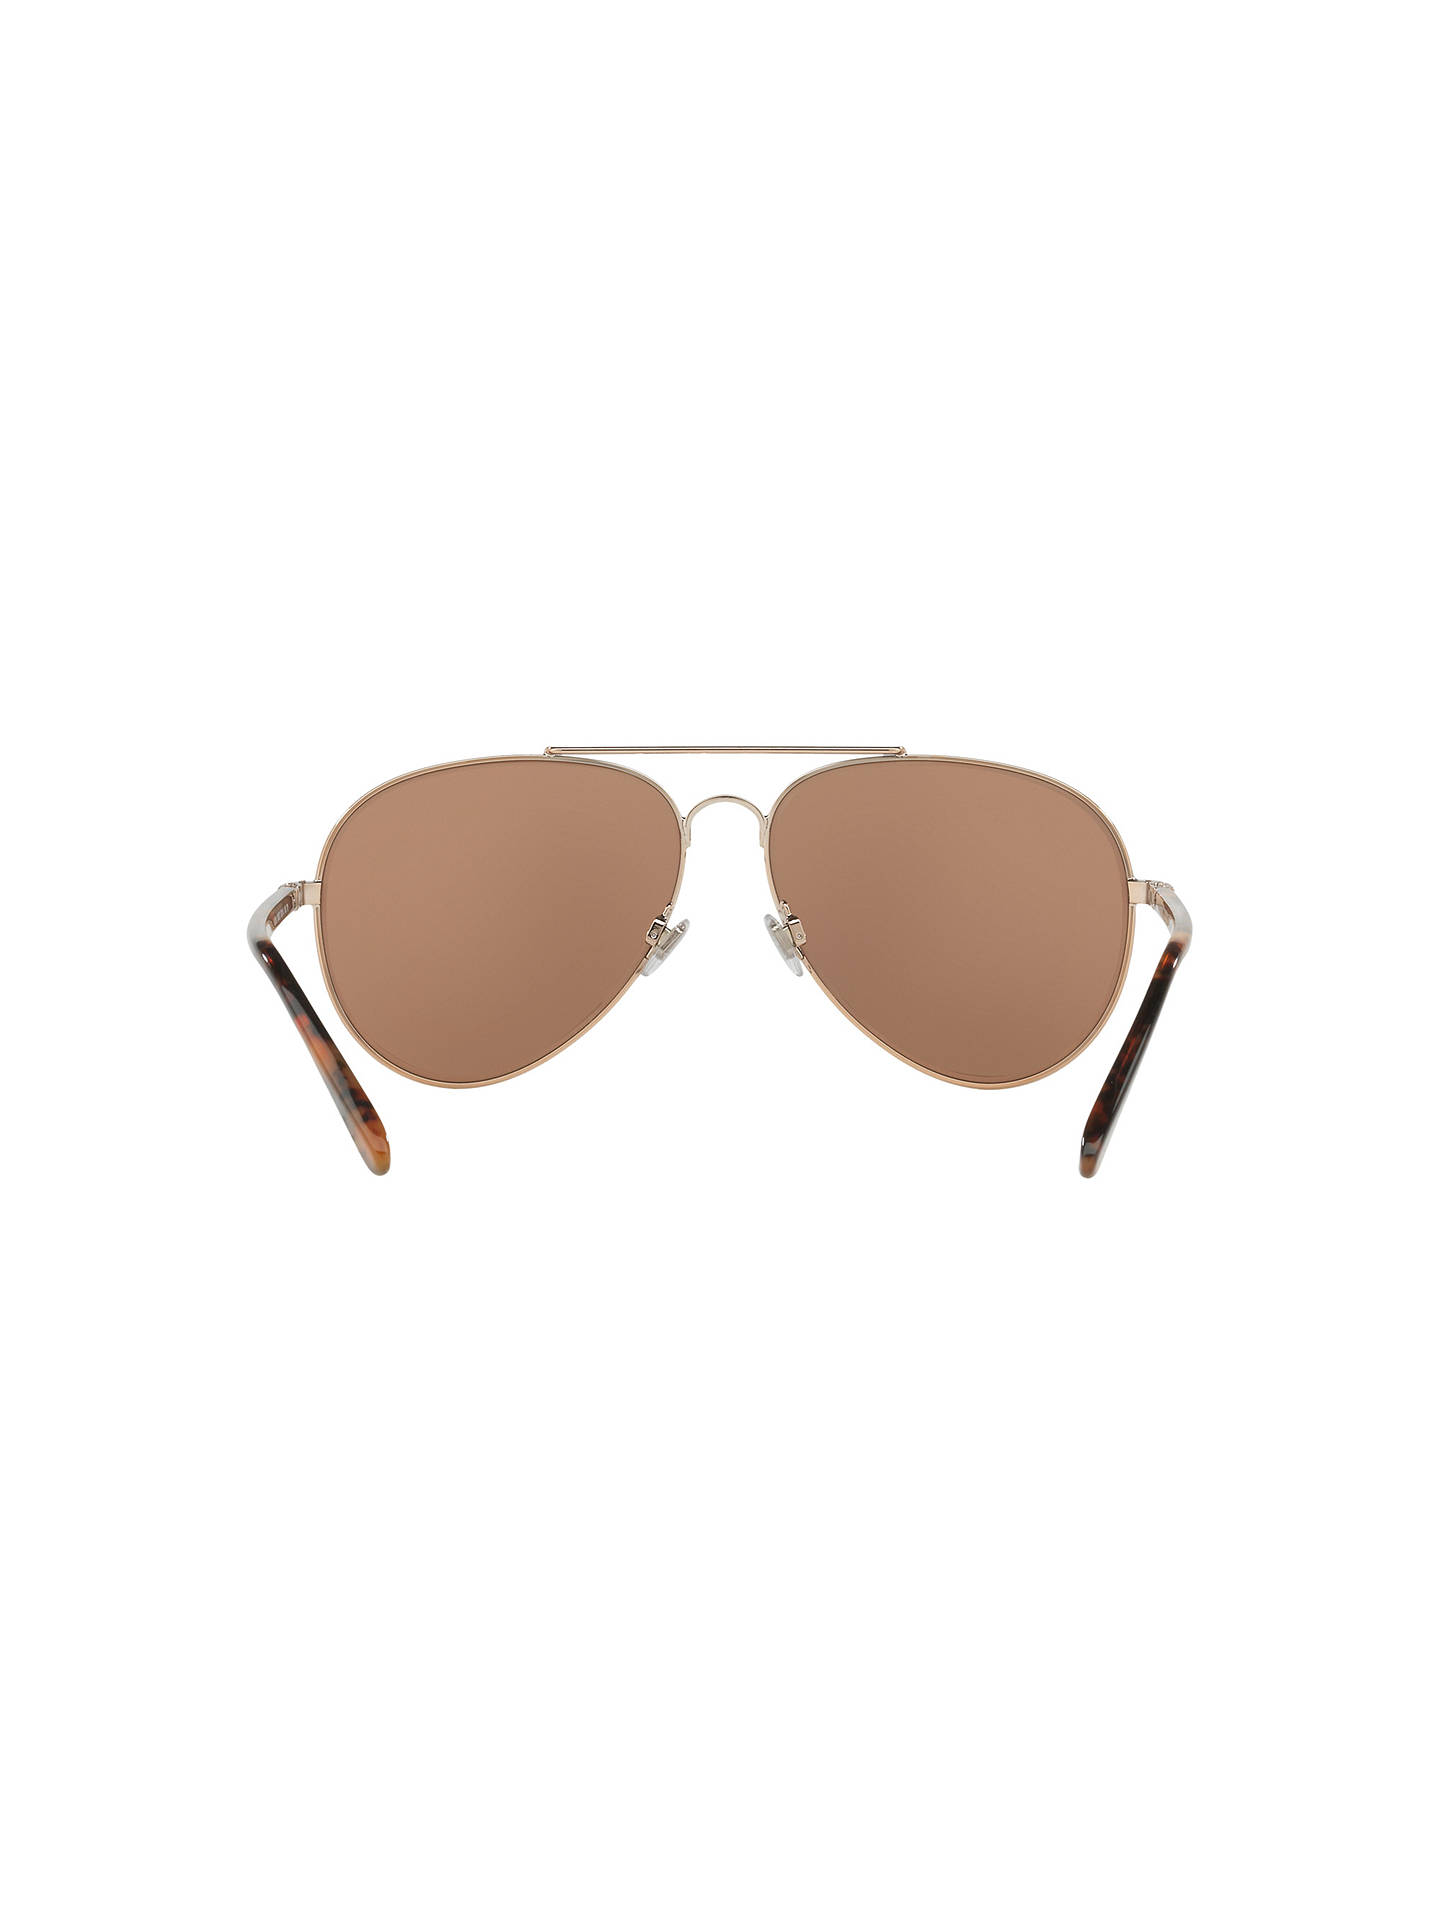 BuyPolo Ralph Lauren RL7058 Polarised Aviator Sunglasses, Gold/Mirror Brown Online at johnlewis.com